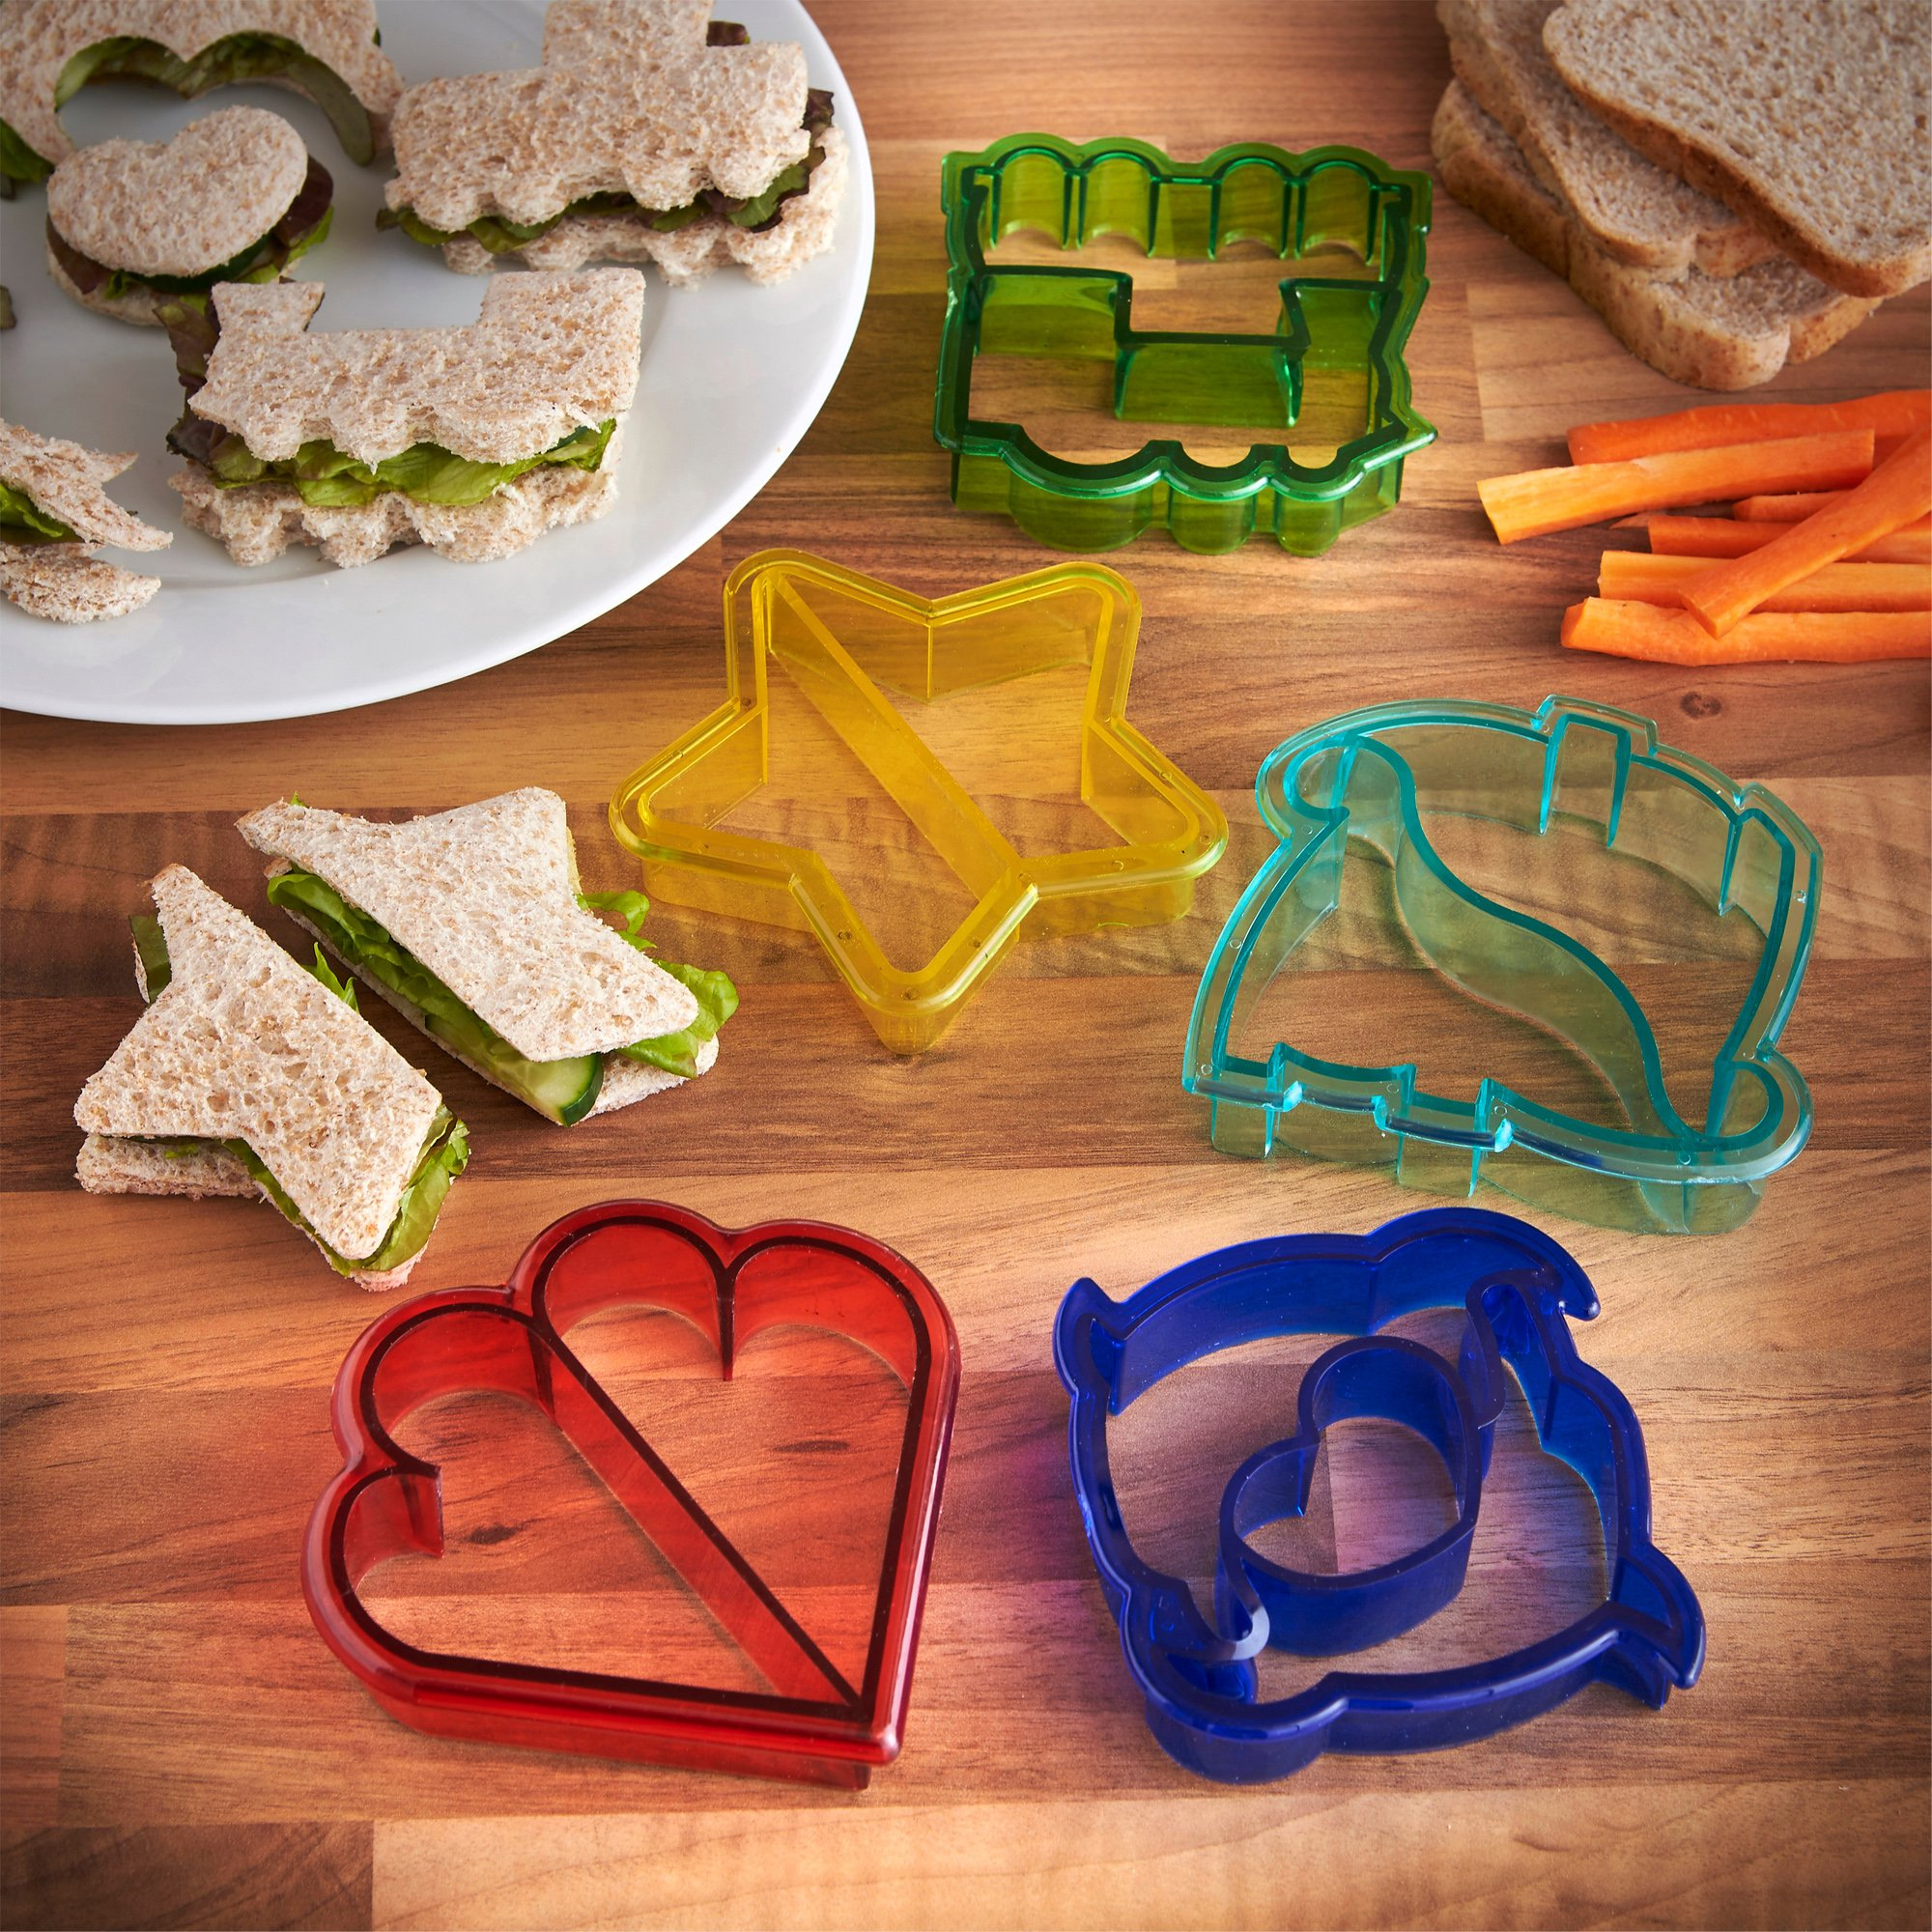 VonShef Fun Cookie Cake and Sandwich Cutter Shapes for Kids, Set of 5 Shapes Dinosaur, Dolphin, Heart, Star and Train, Multi Colored, 5pc by VonShef (Image #2)